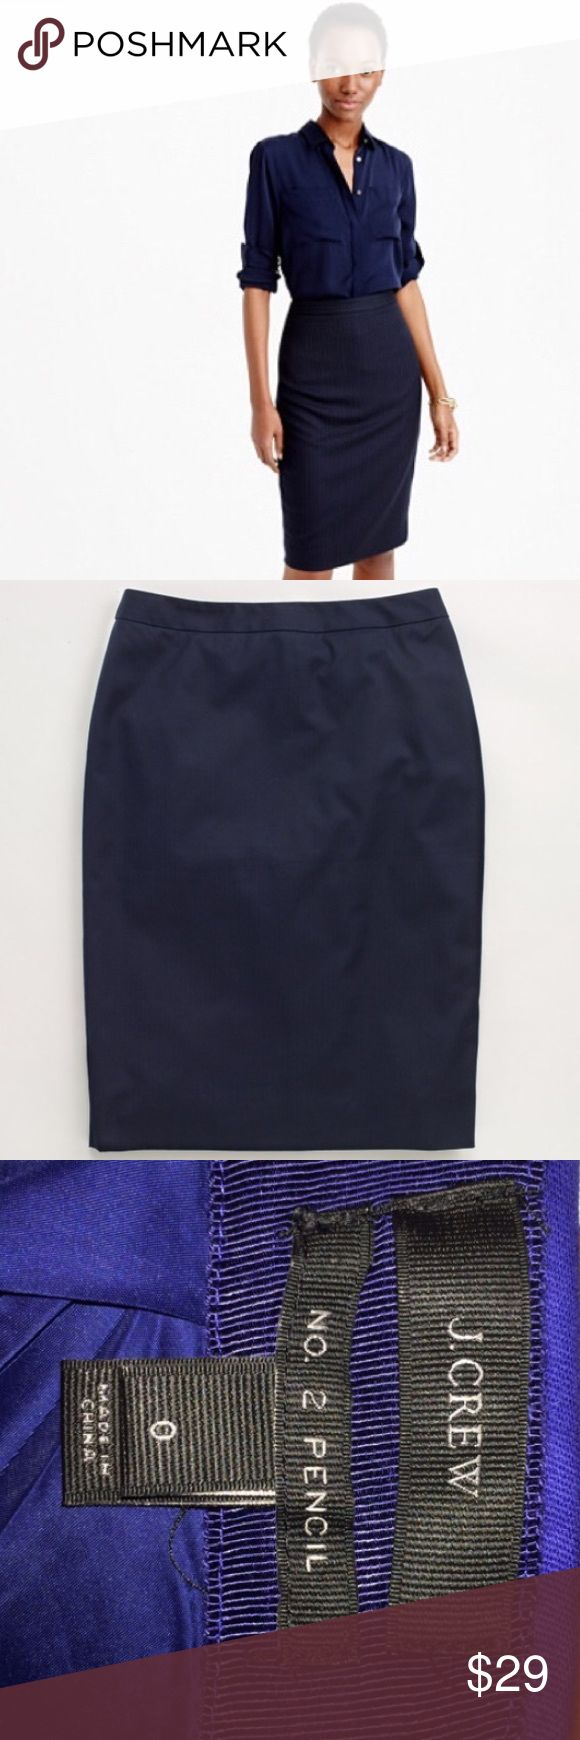 J. Crew Navy Blue Pencil Skirt Worn a few times and in perfect condition. Classic pencil skirt from J. Crew in a flattering Navy blue. Perfect for work J. Crew Skirts Pencil